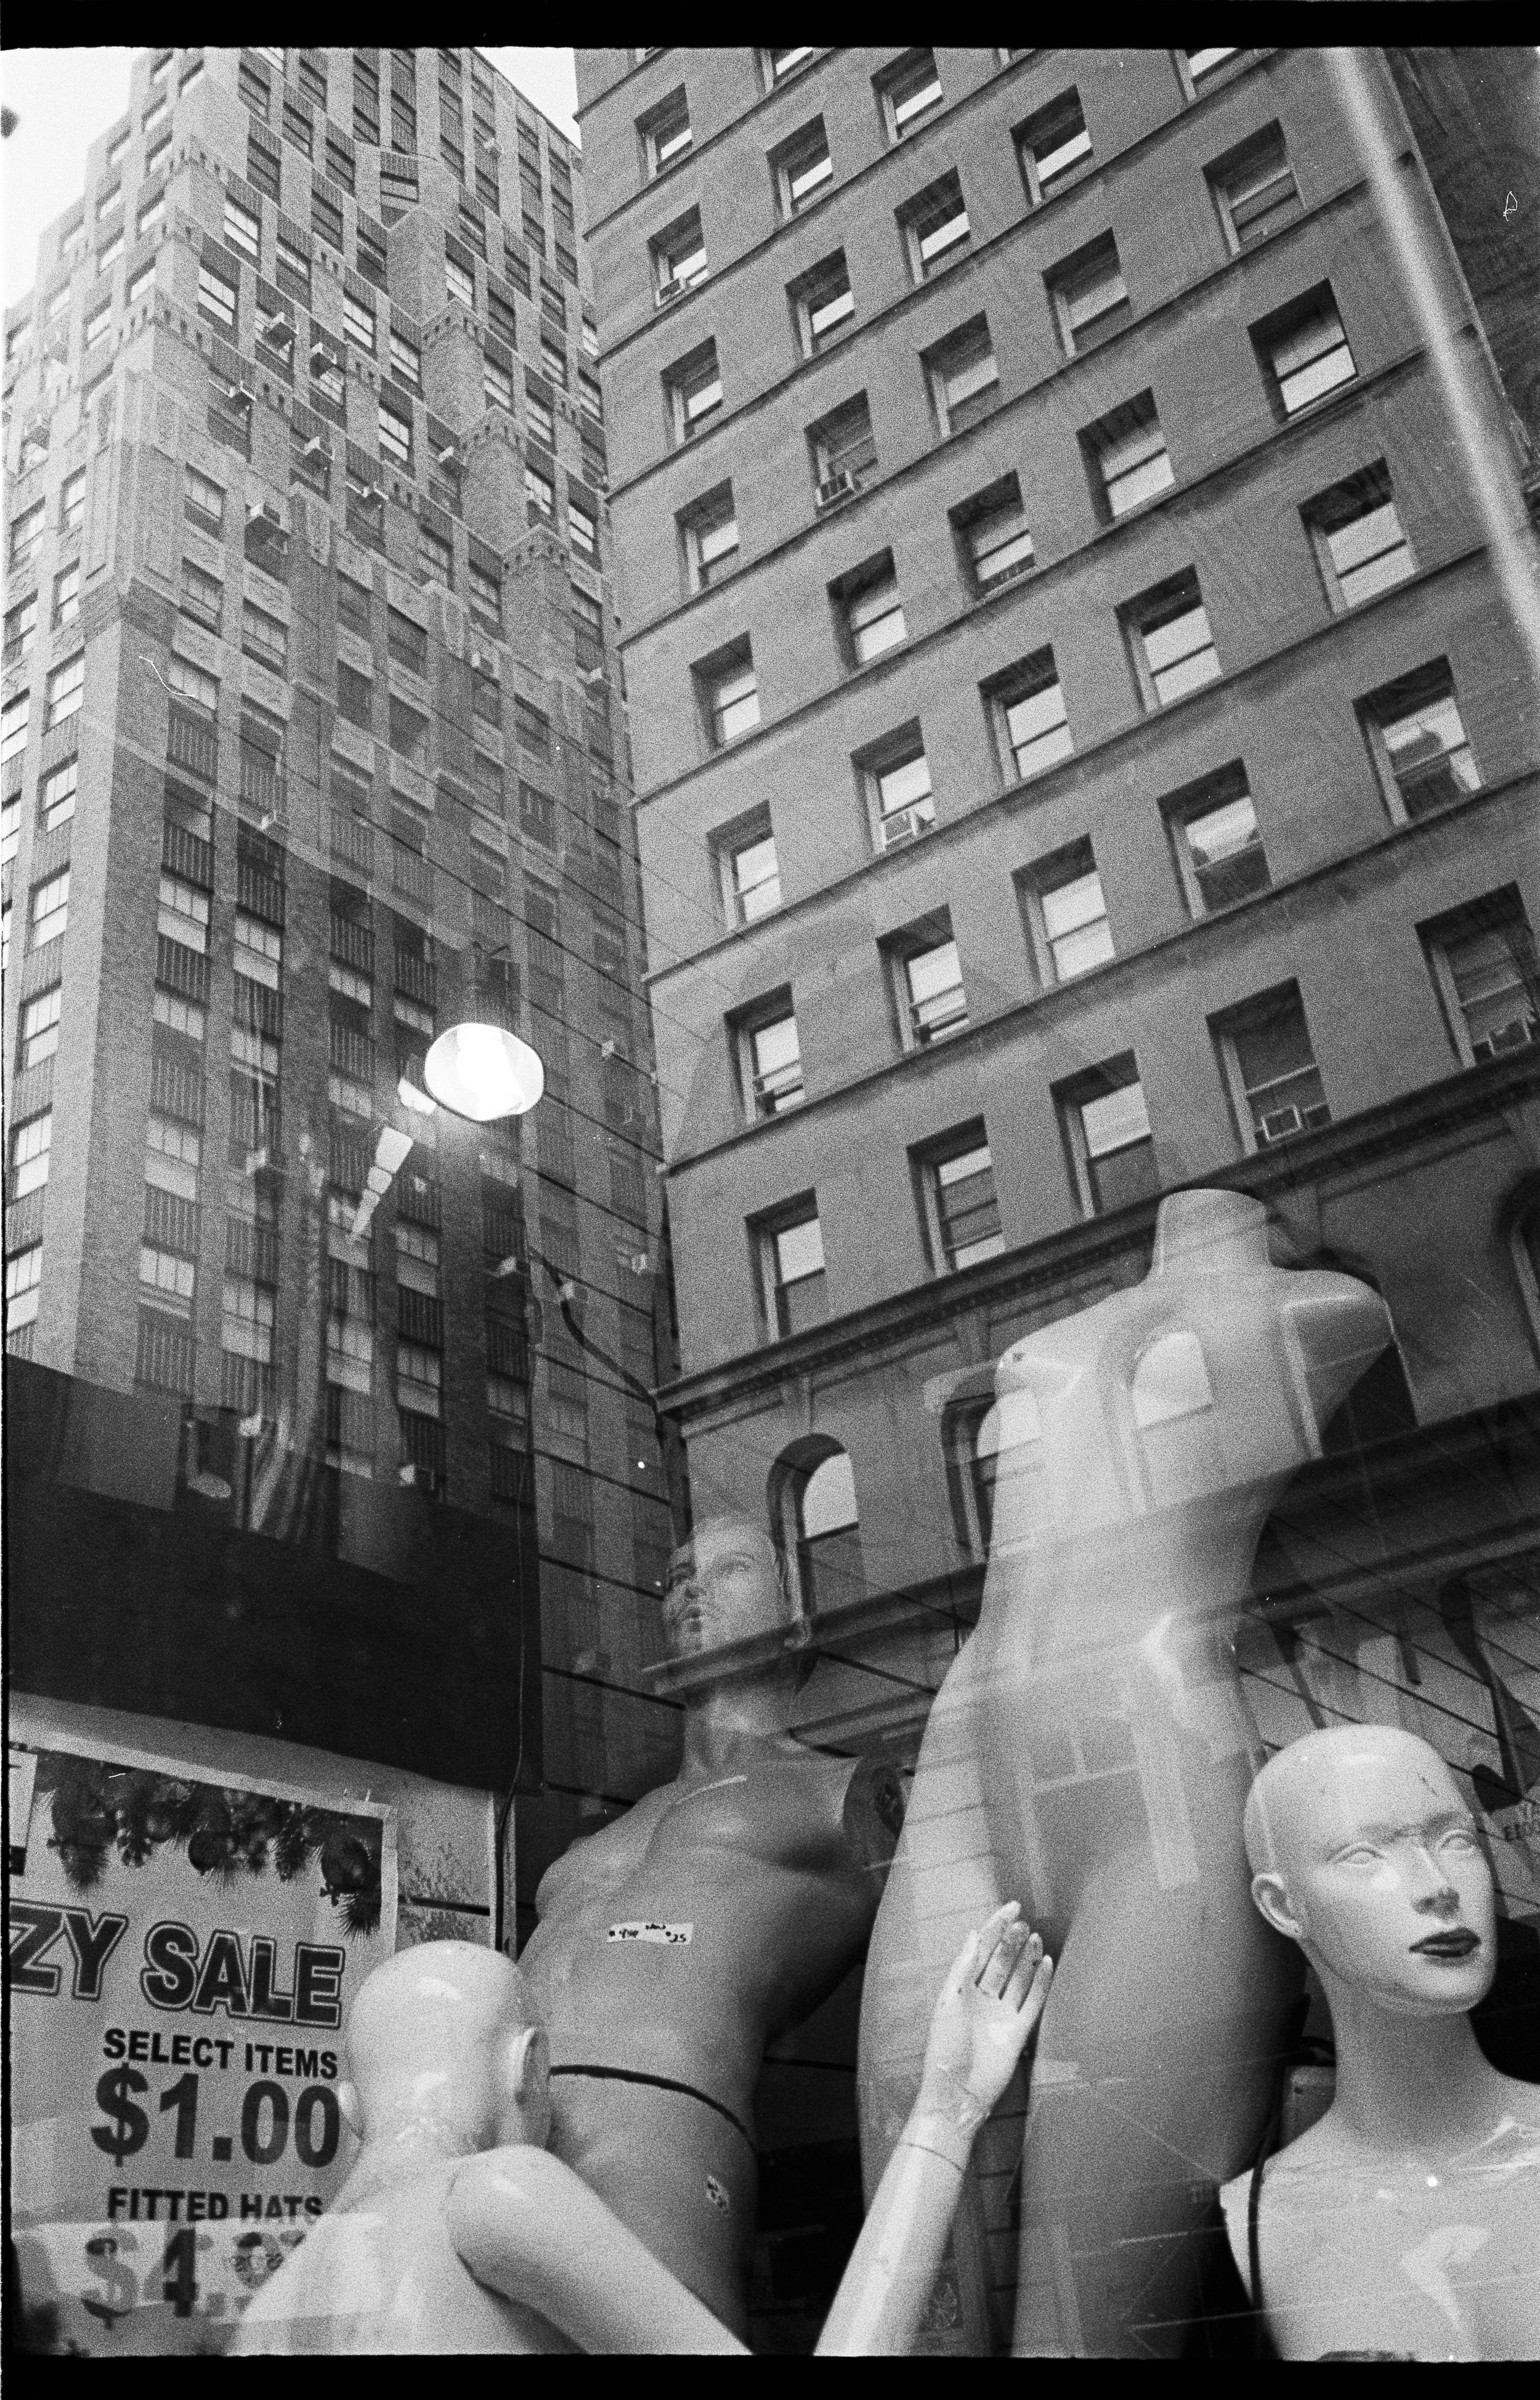 Mannequin Orgy and Buildings.jpeg